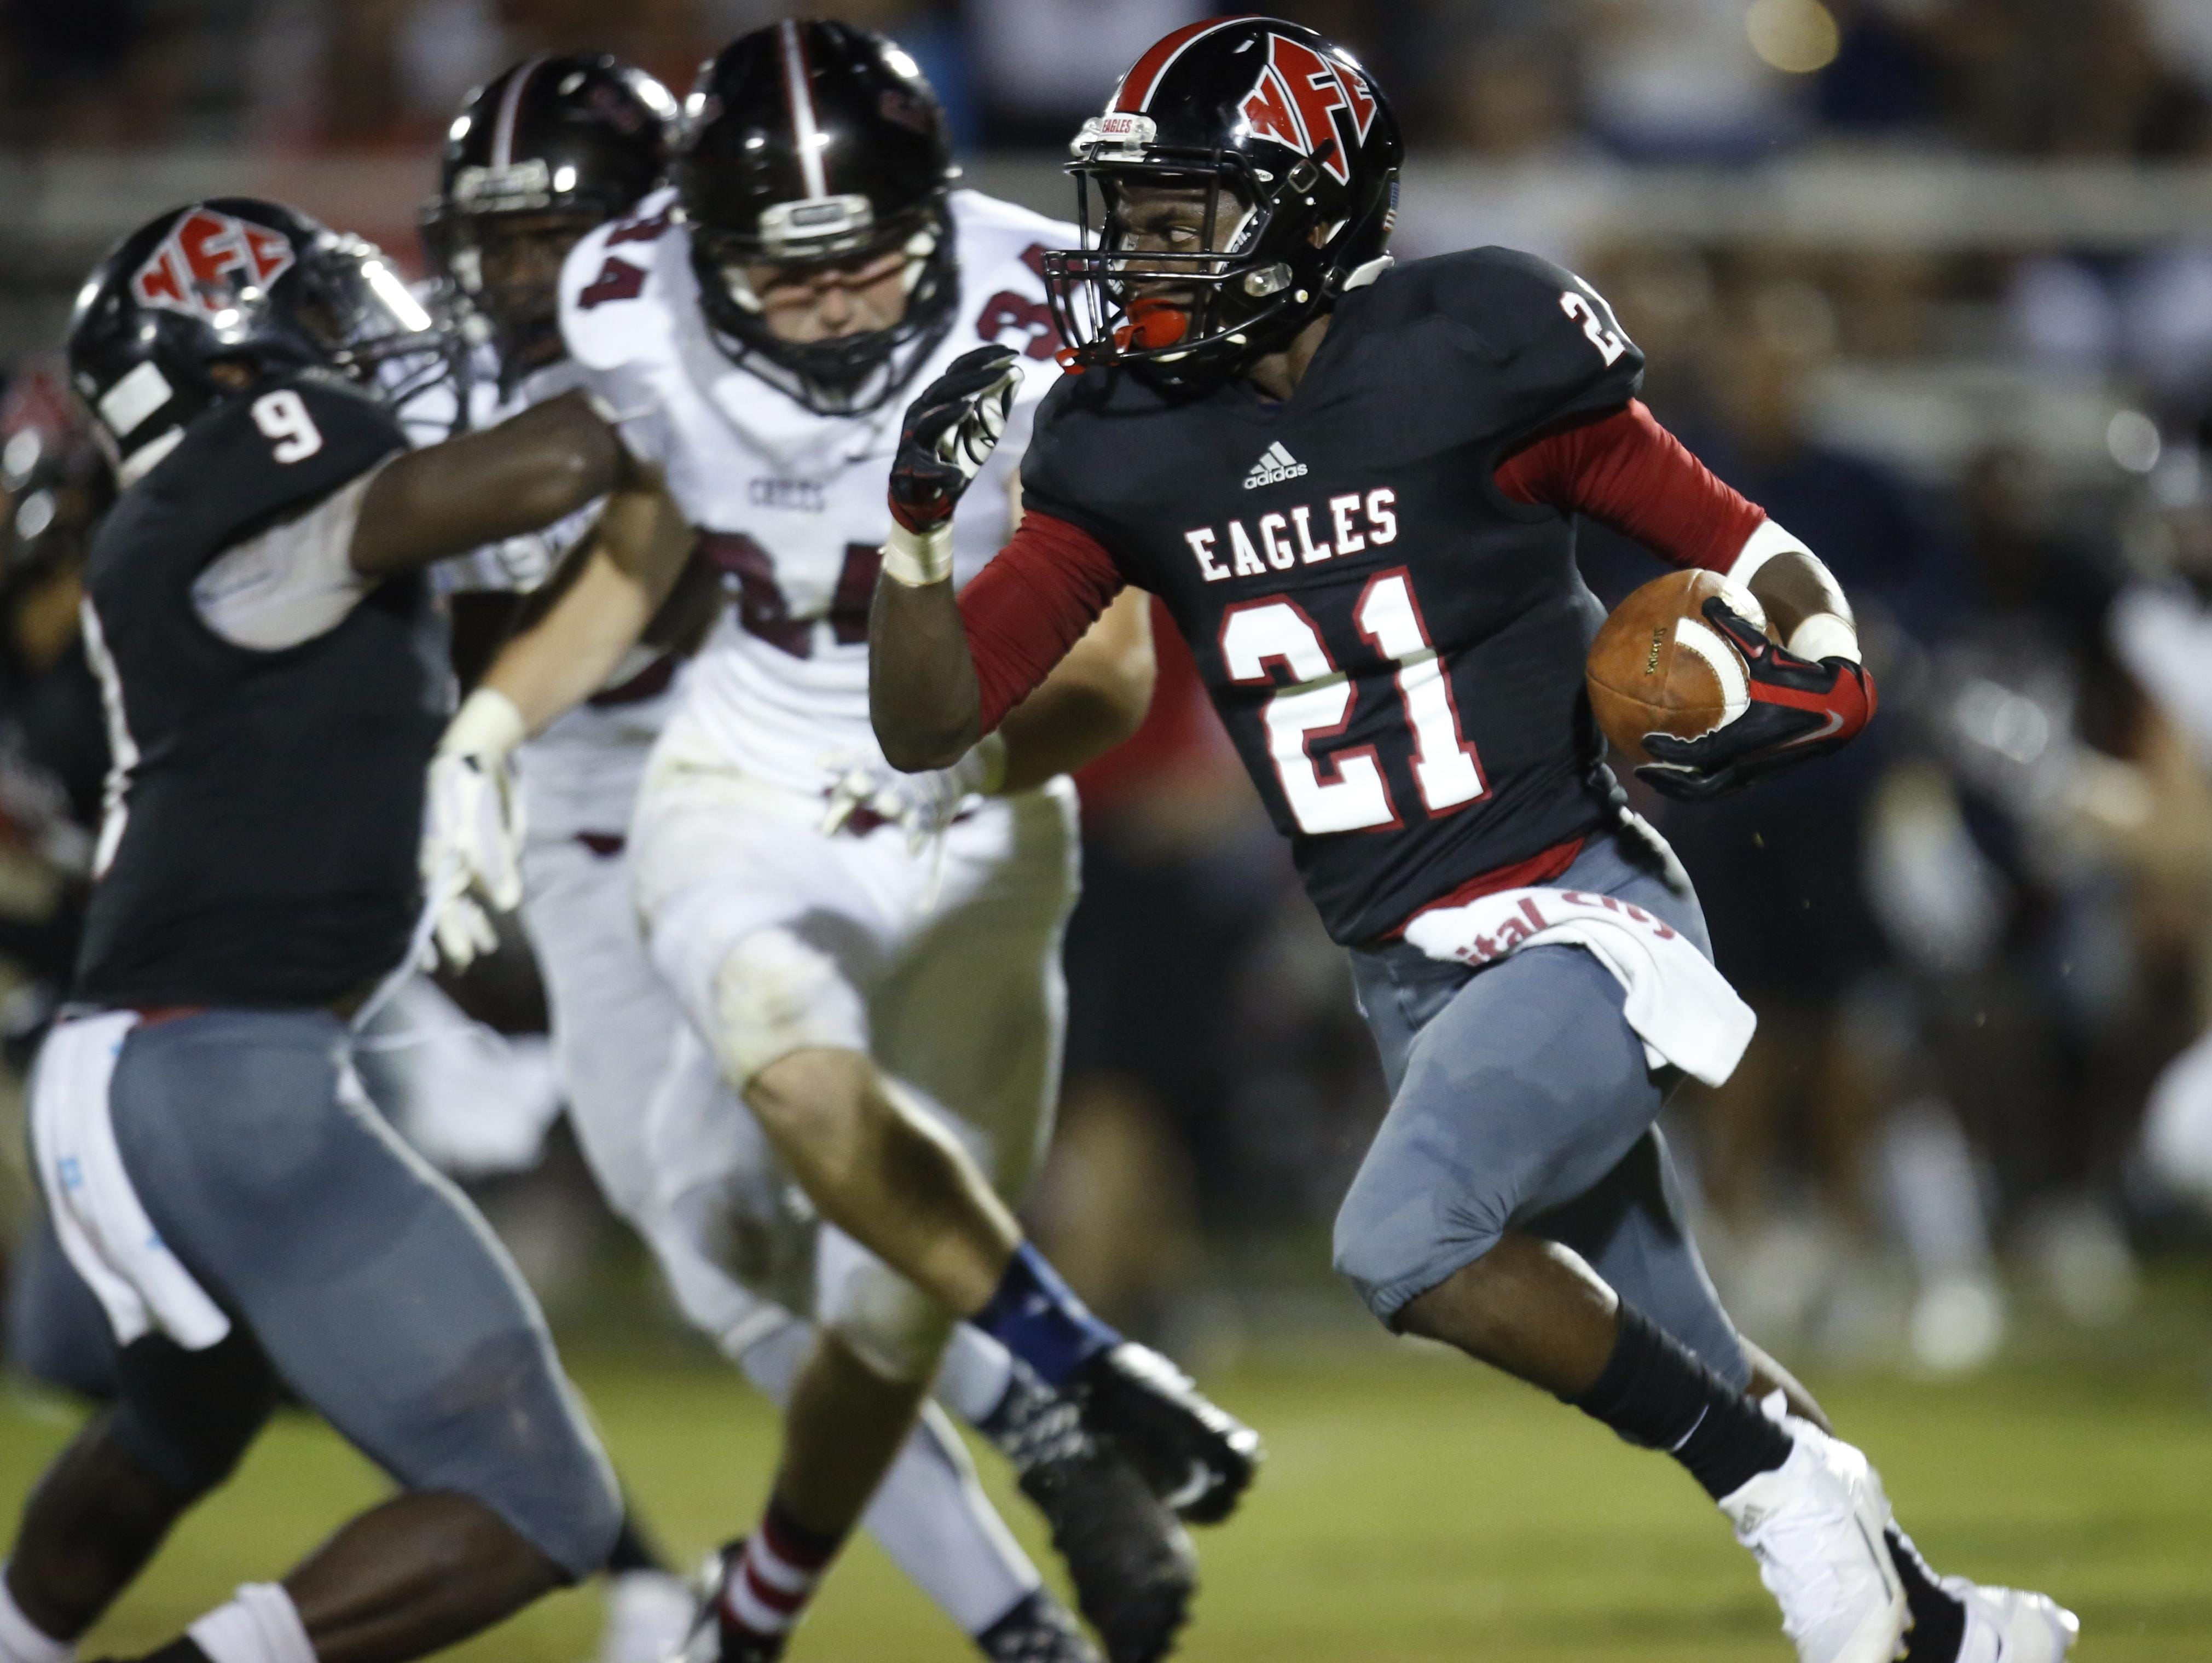 NFC's T.J. Ashley returns a kickoff against Chiles during their game at North Florida Christian on Friday.